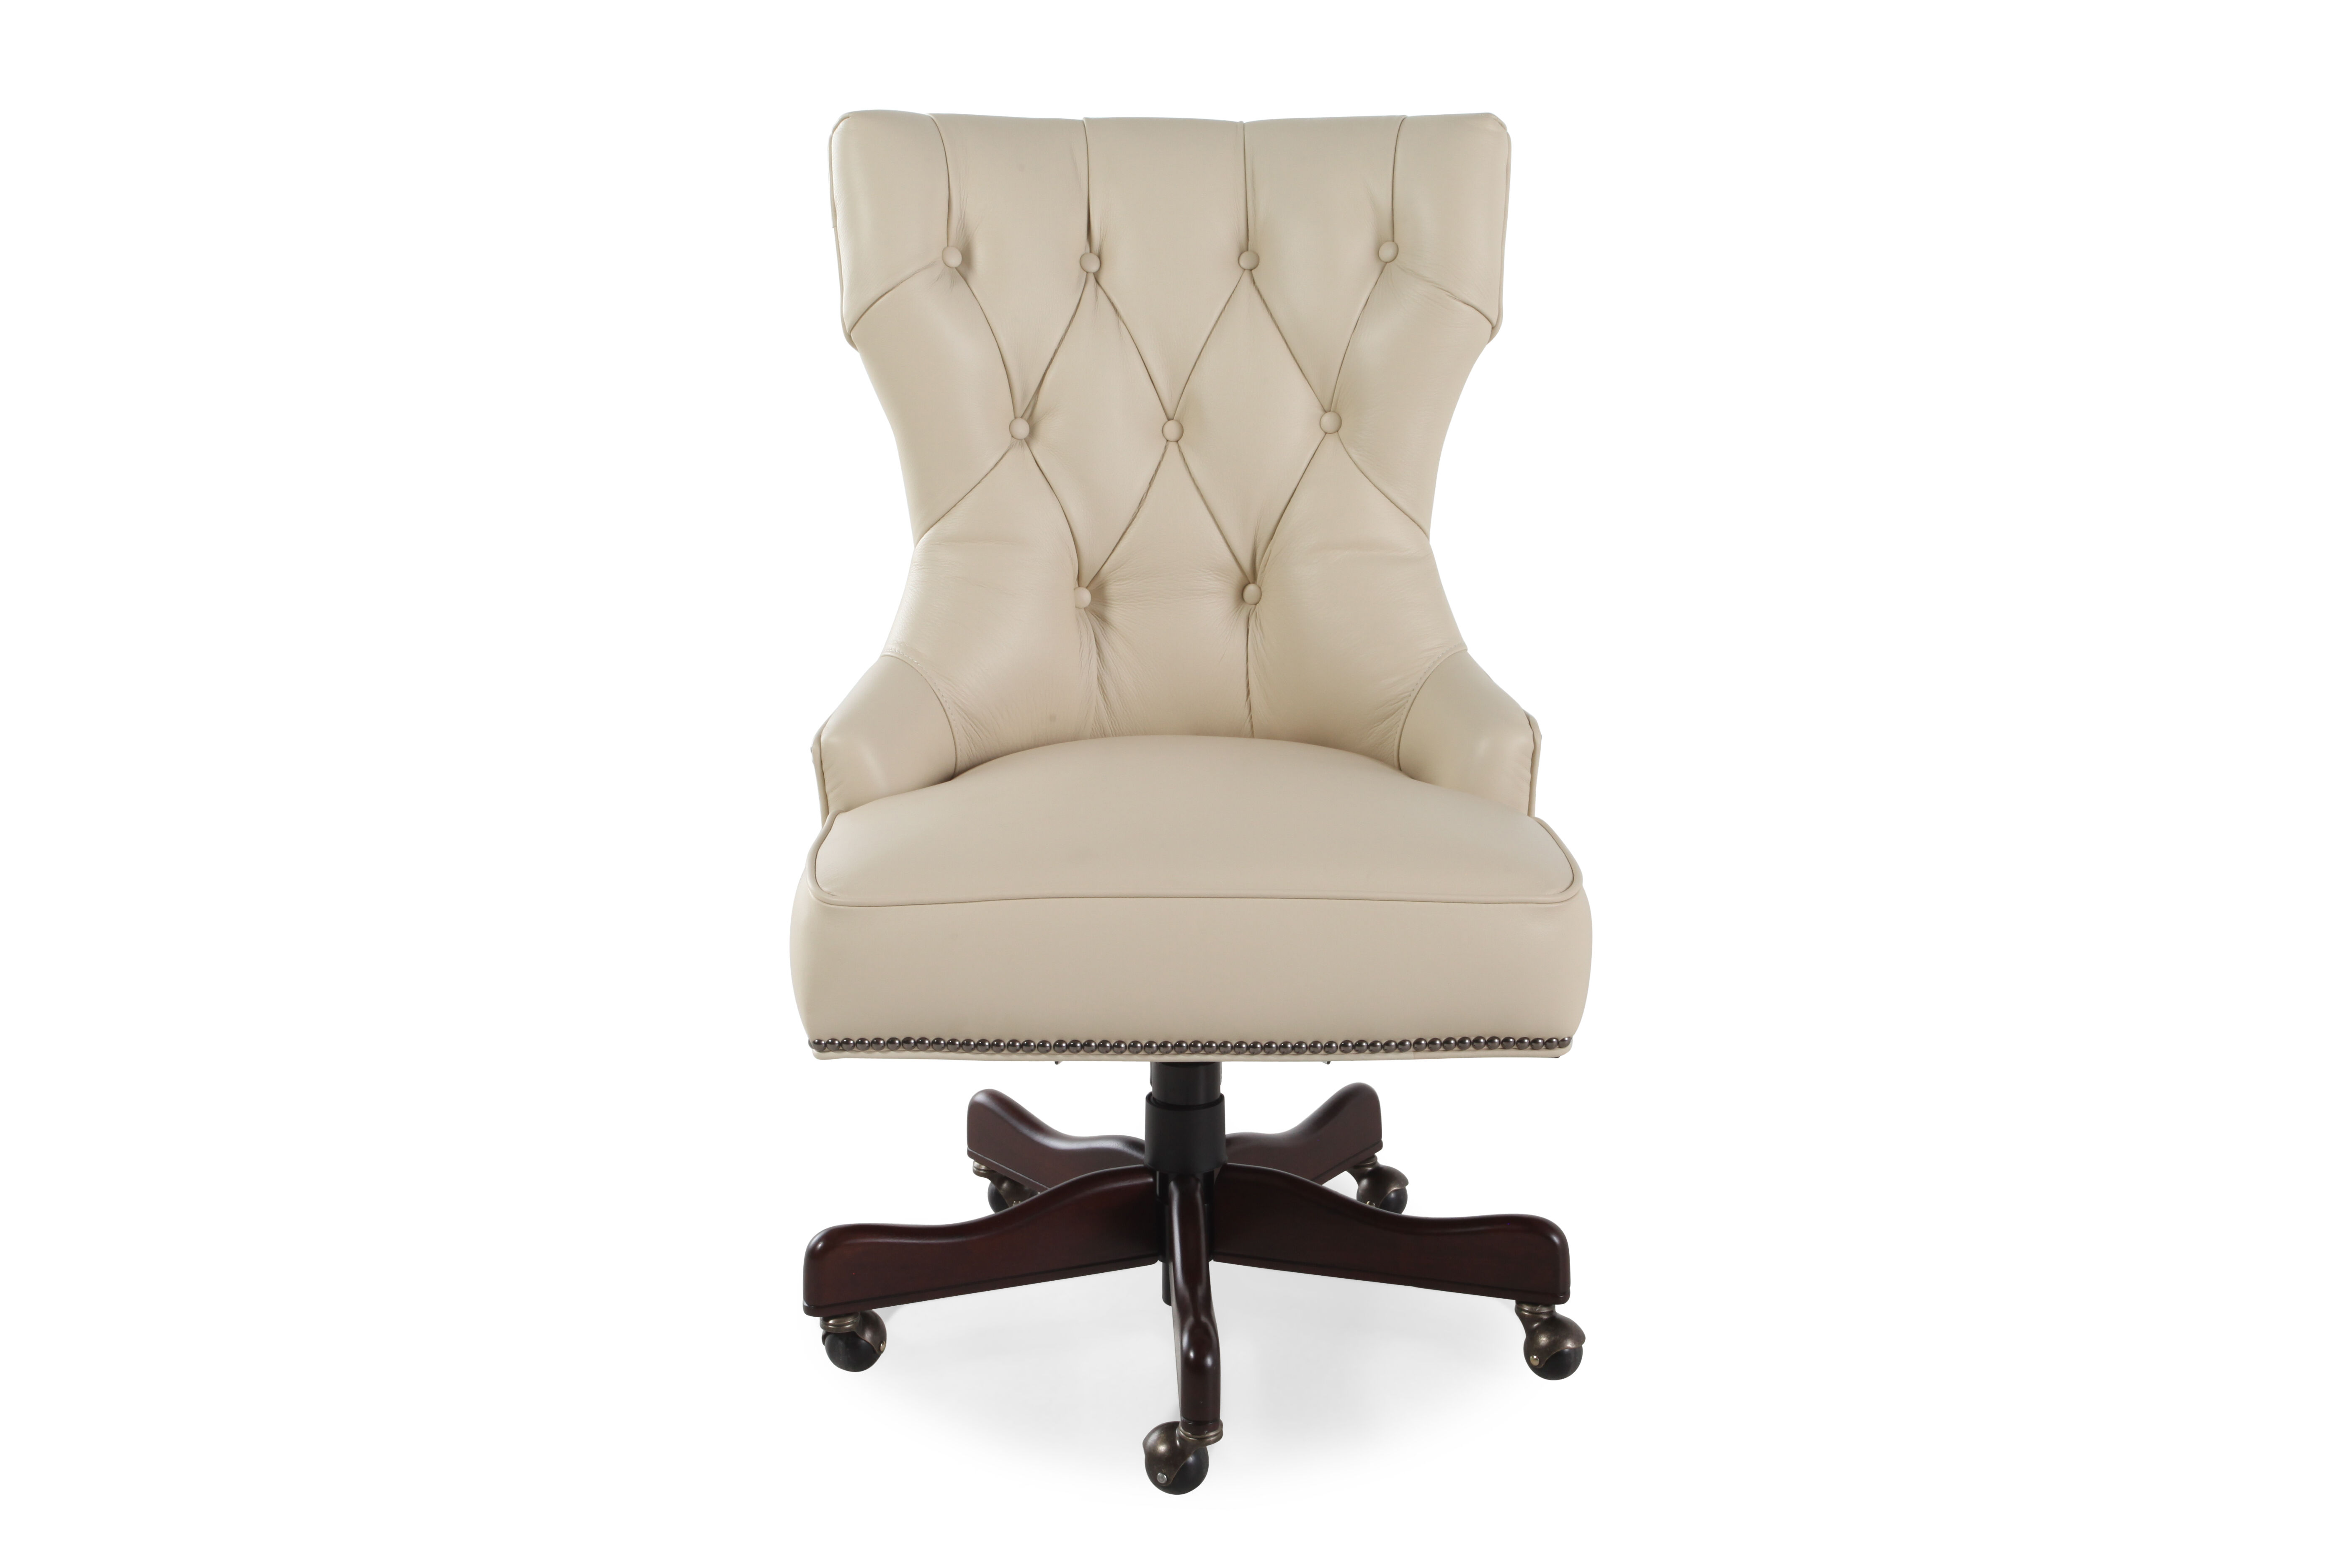 Leather Button-Tufted Swivel Tilt Desk Chairu0026nbsp ...  sc 1 st  Mathis Brothers & Home Office Chairs - Desk Chairs | Mathis Brothers